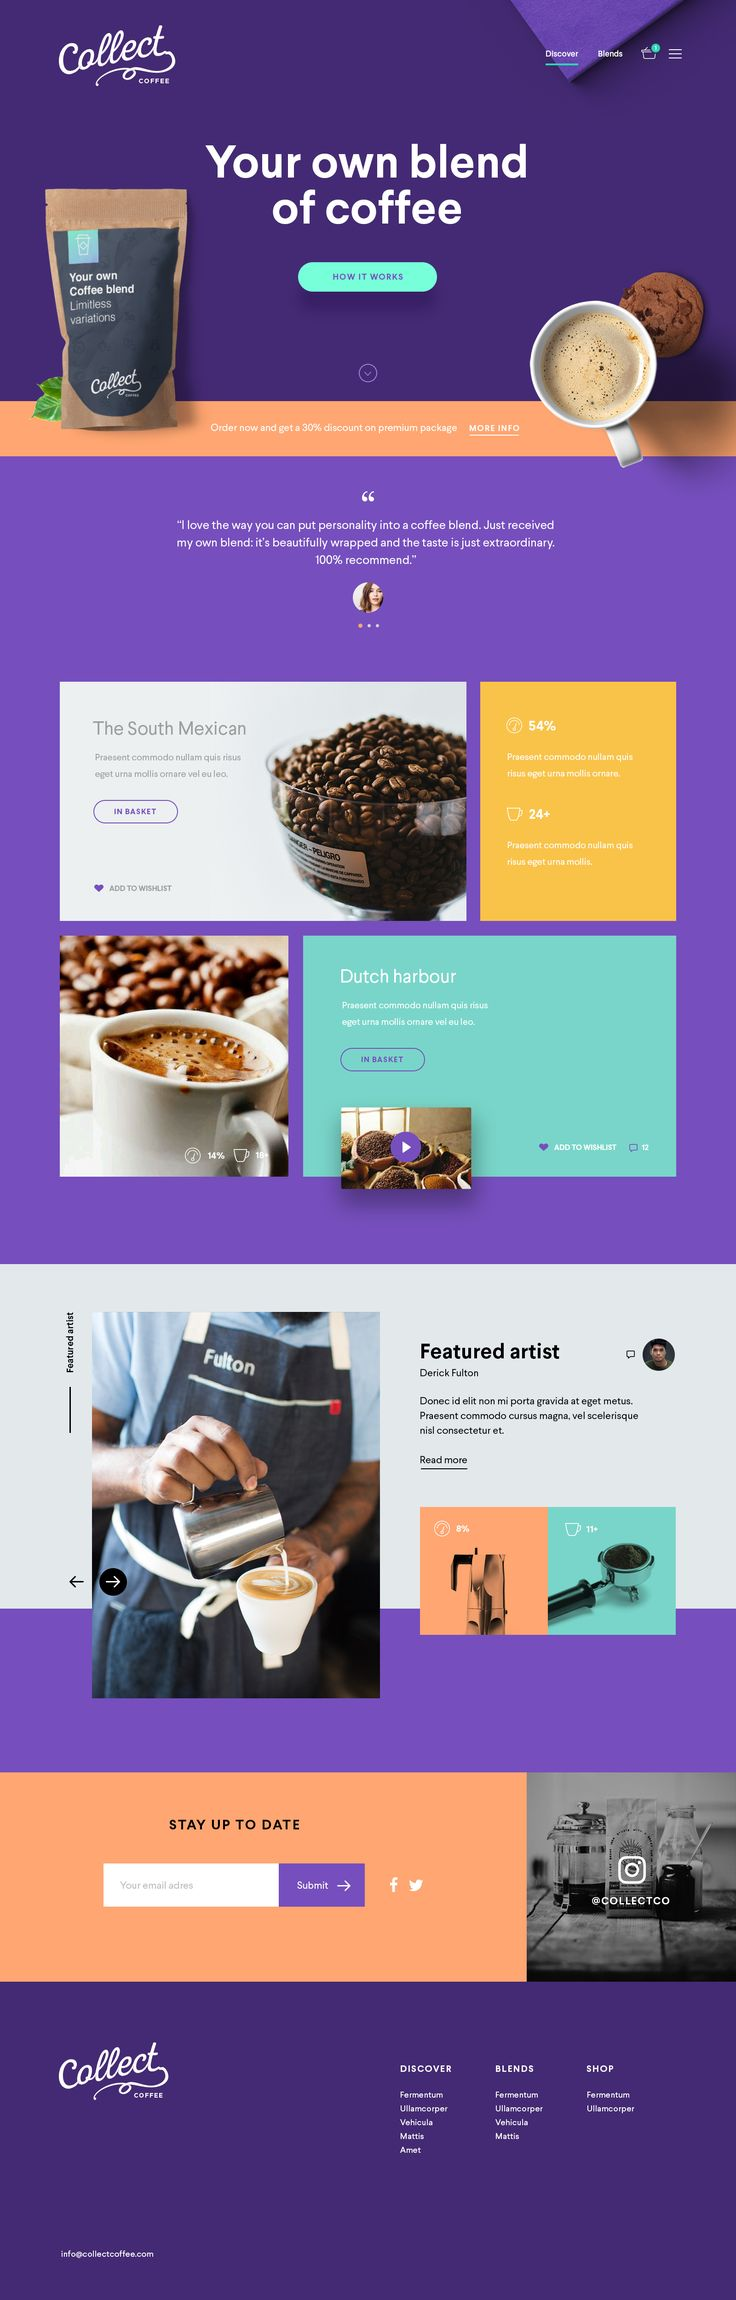 Collect3 - I like the images breaking space, grid layout, sprinkling of round…